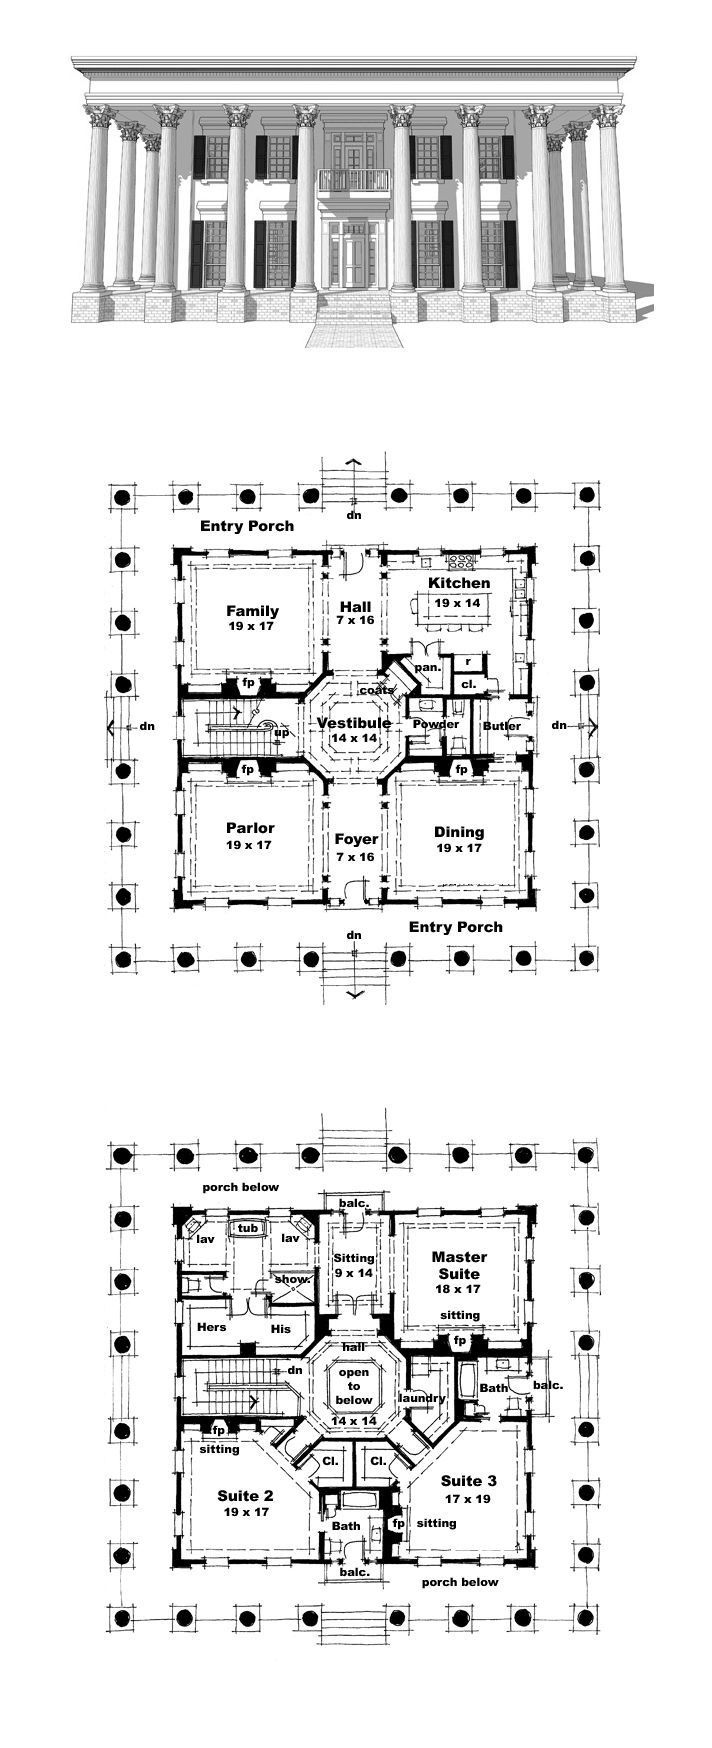 Plantation House Plan 67508 | Total Living Area: 4500 SQ FT, 3 bedrooms and 3.5 bathrooms. The large wrap-around porch shades all sides of the house, providing outdoor space for entertaining and relaxing. #plantationhome